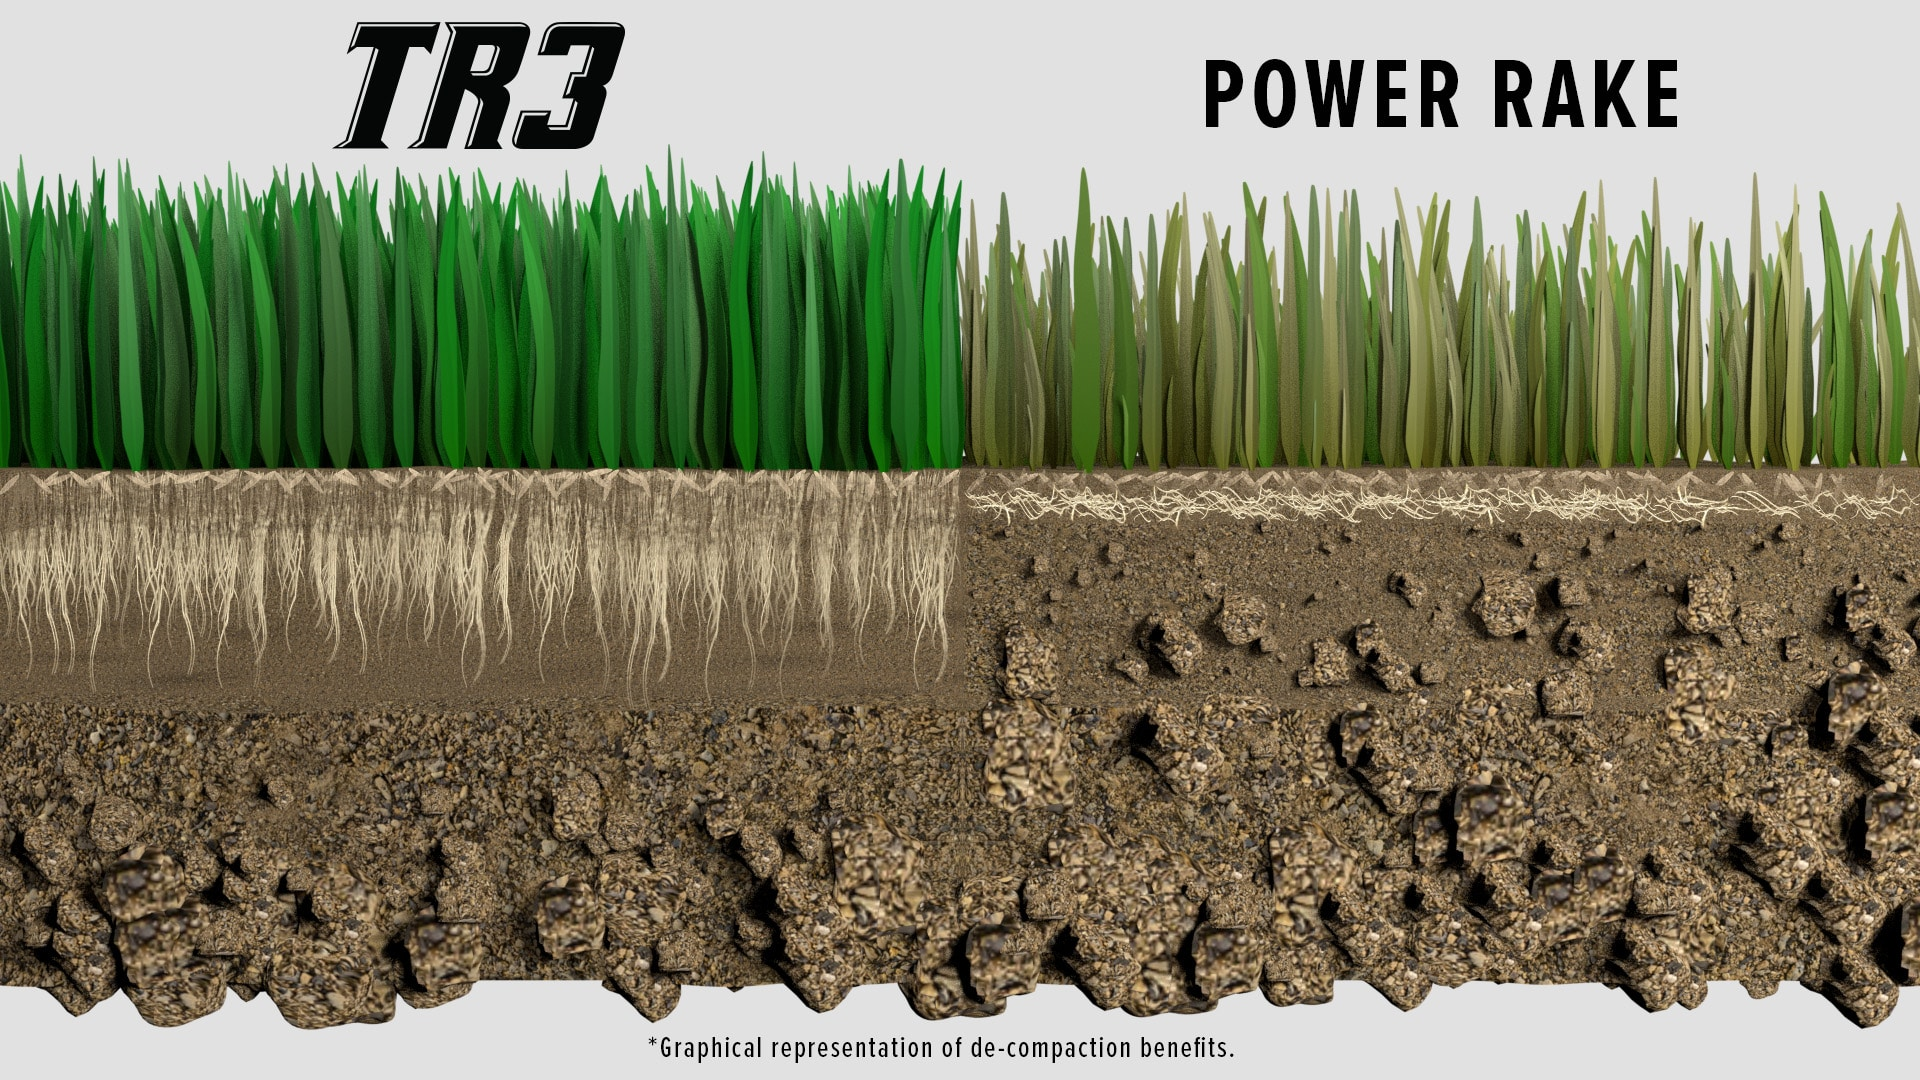 TR3 Decompacted Soil